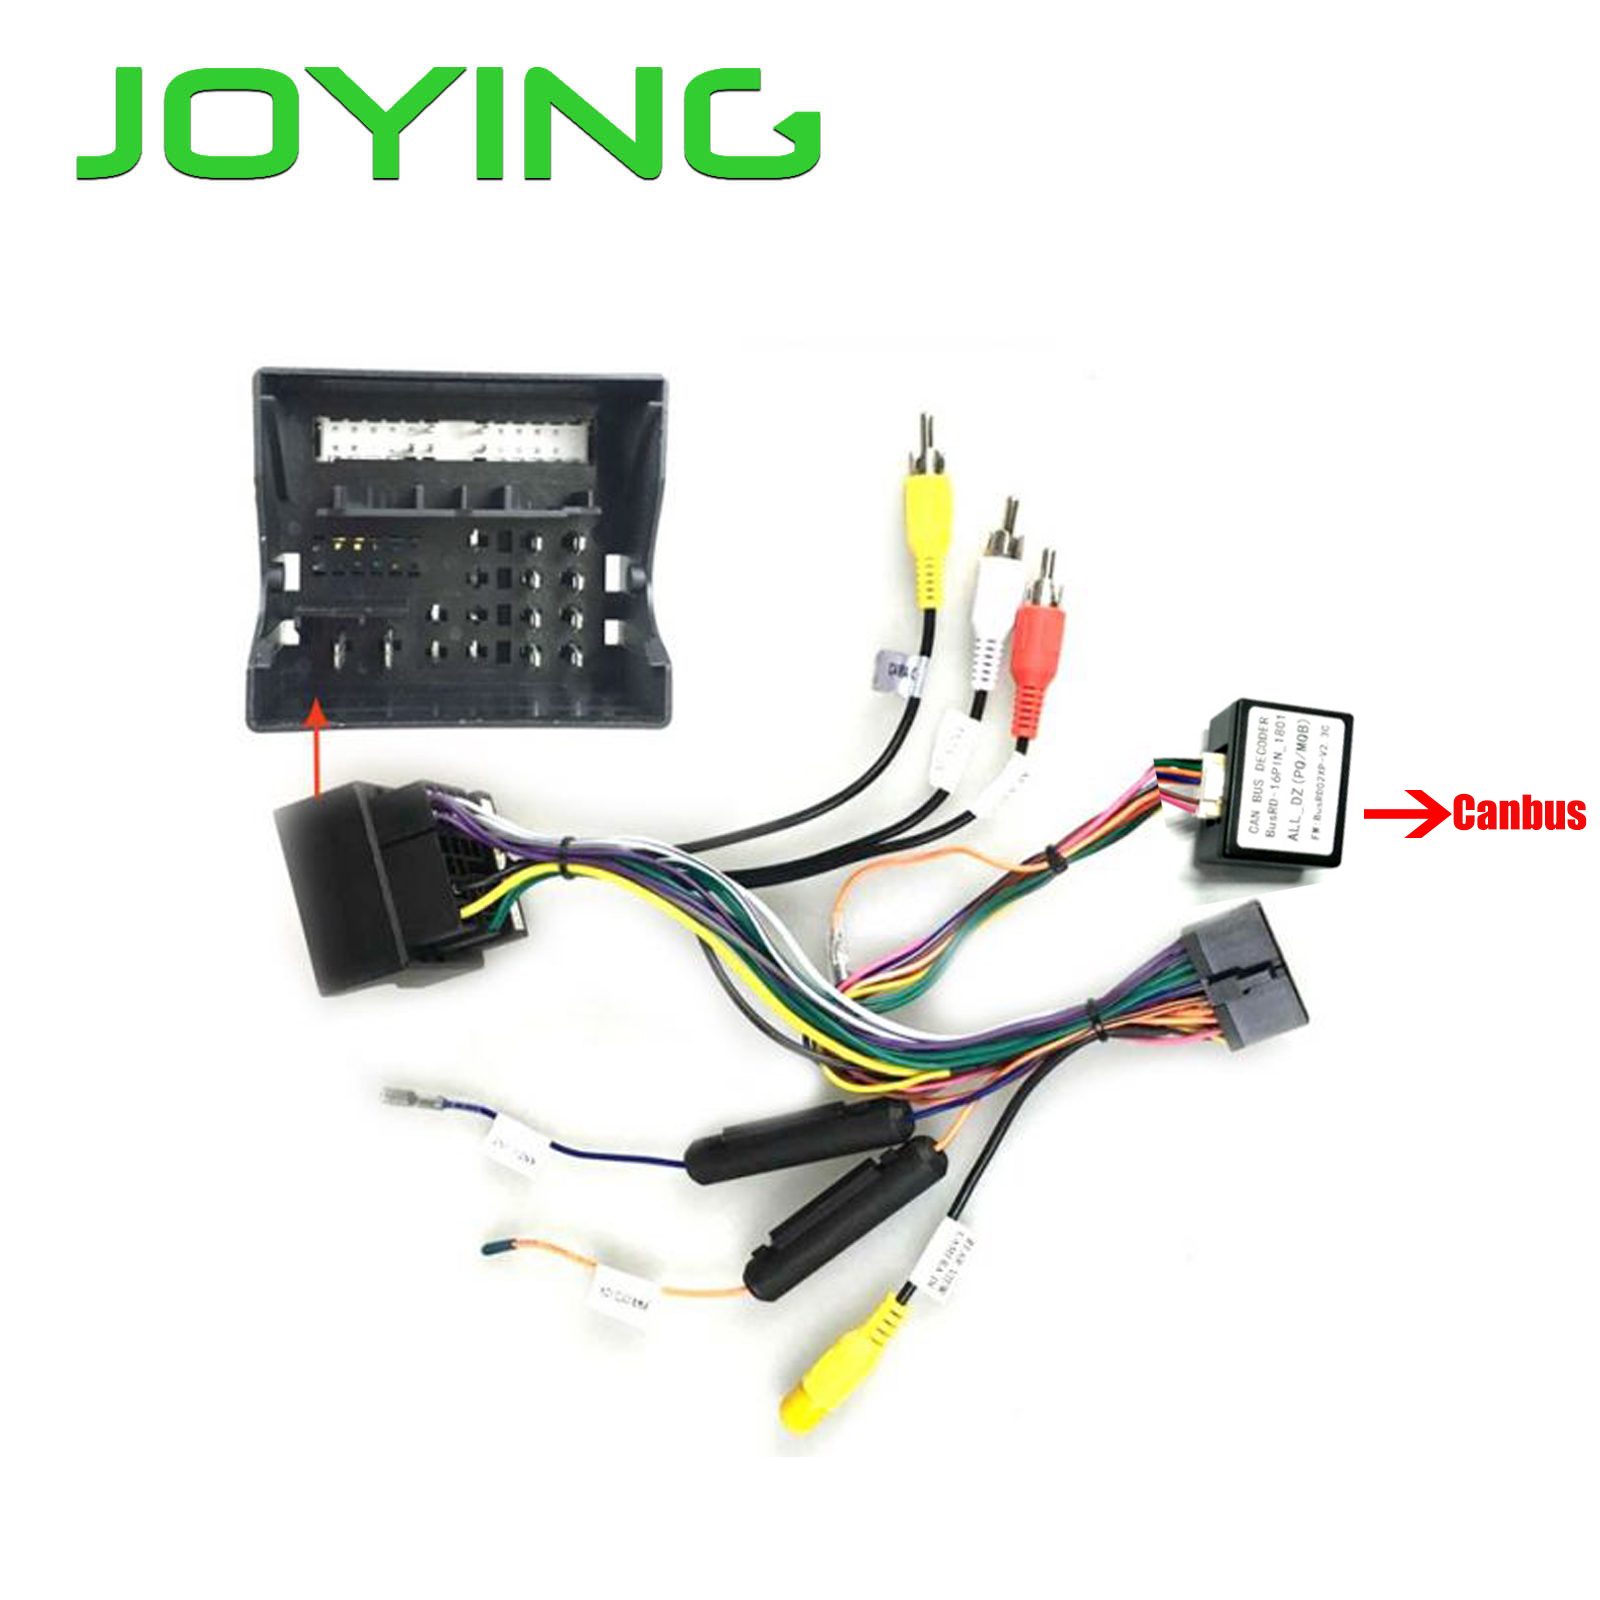 Joying New 2016-2017 VW Power Plug Harness Wiring Cable For Android Autoradio